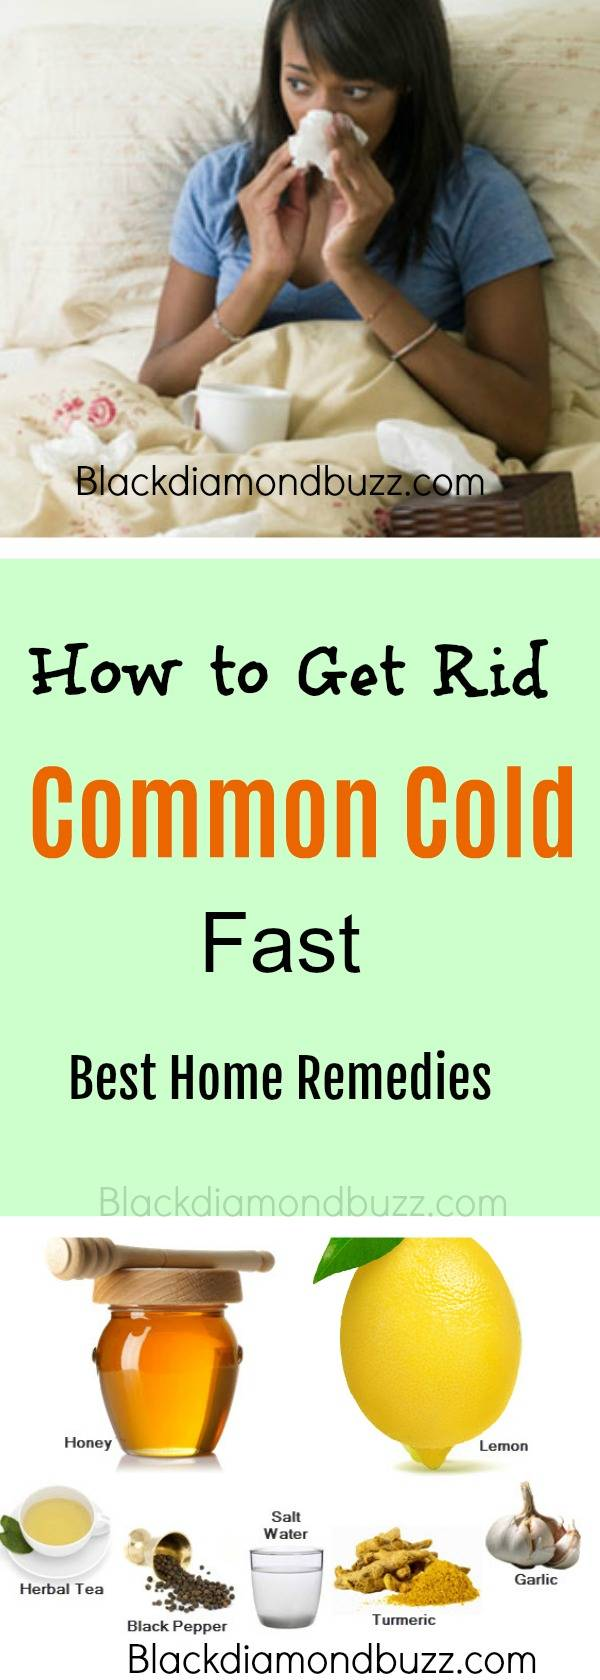 10 Home Remedies For Common Cold: Get Rid of Common Overnight!